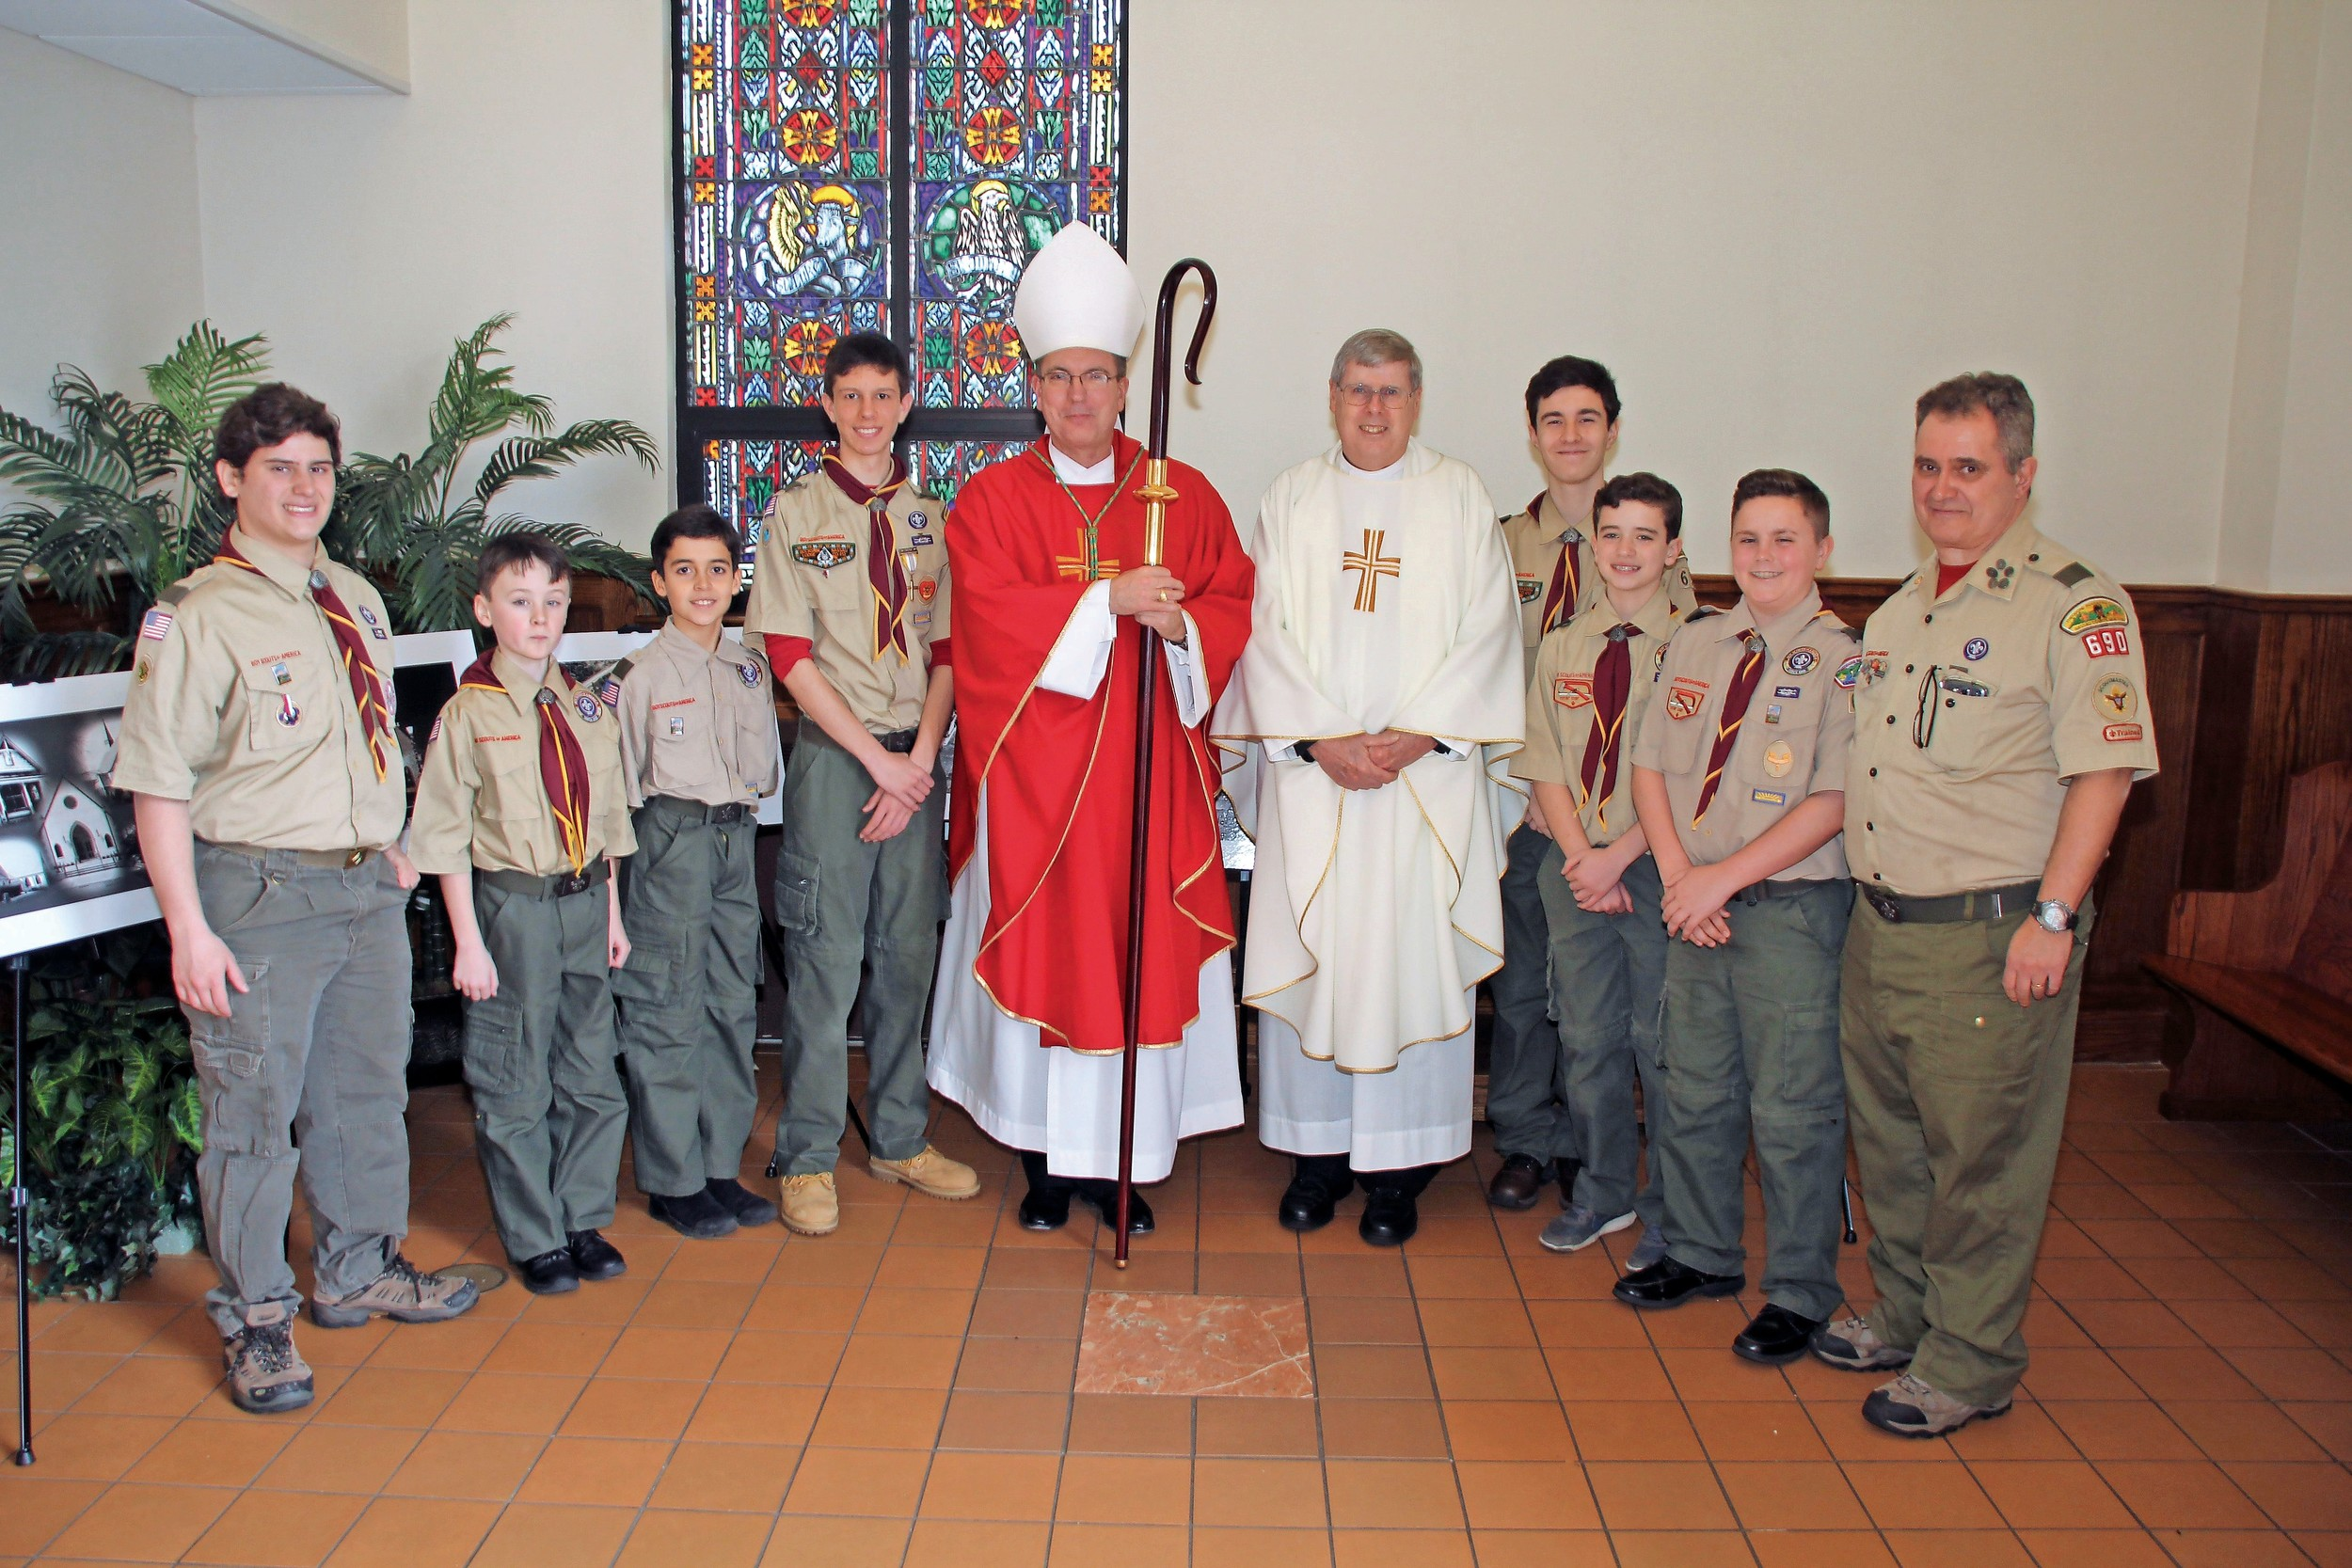 Bishop John Barres, center left, met the Rev. Robert Hayden, left, pastor of St. William the Abbot; Seaford Boy Scout Troop 690 members Nathaniel Lettieri, John Melloy, Ian Pagan, Chris Tarcasco, John Frey, Michael Doht, Aidan Dempsey and Scoutmaster Ed Lettieri; and local Catholics at a deanery Mass at the church.